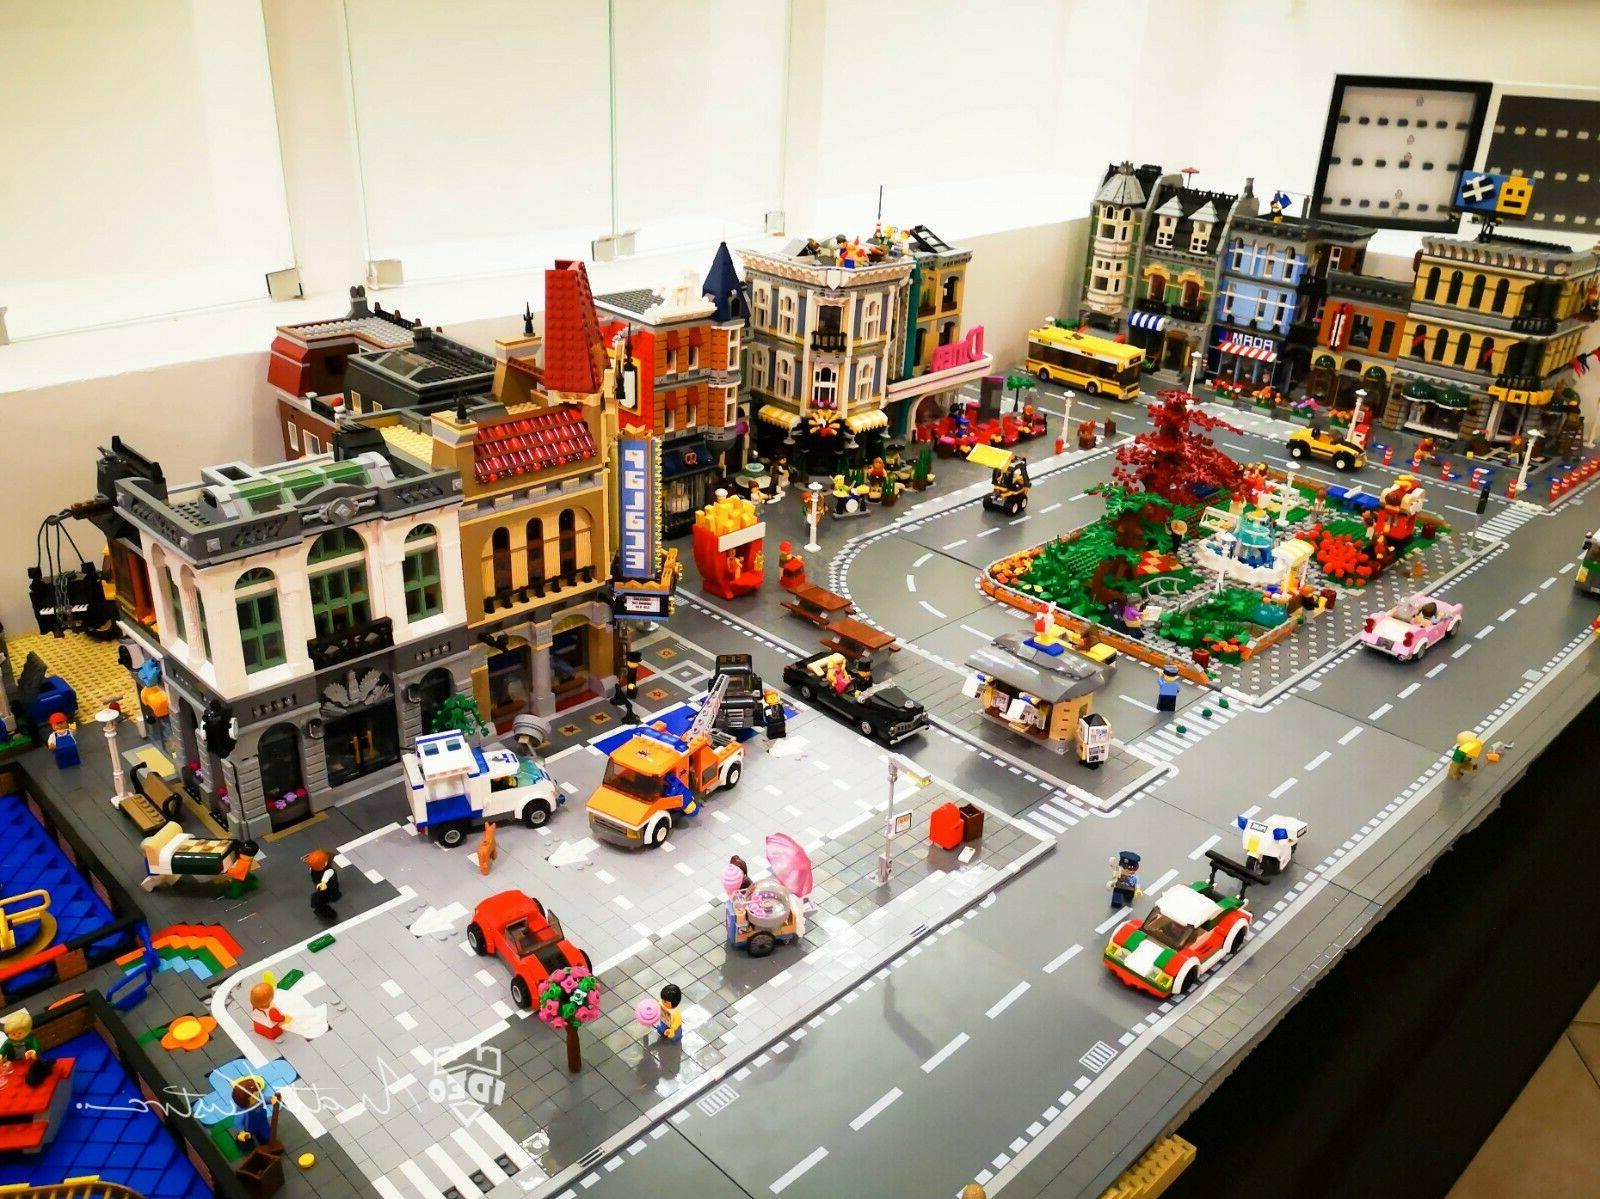 City bricks model commission with Paw by model building companies